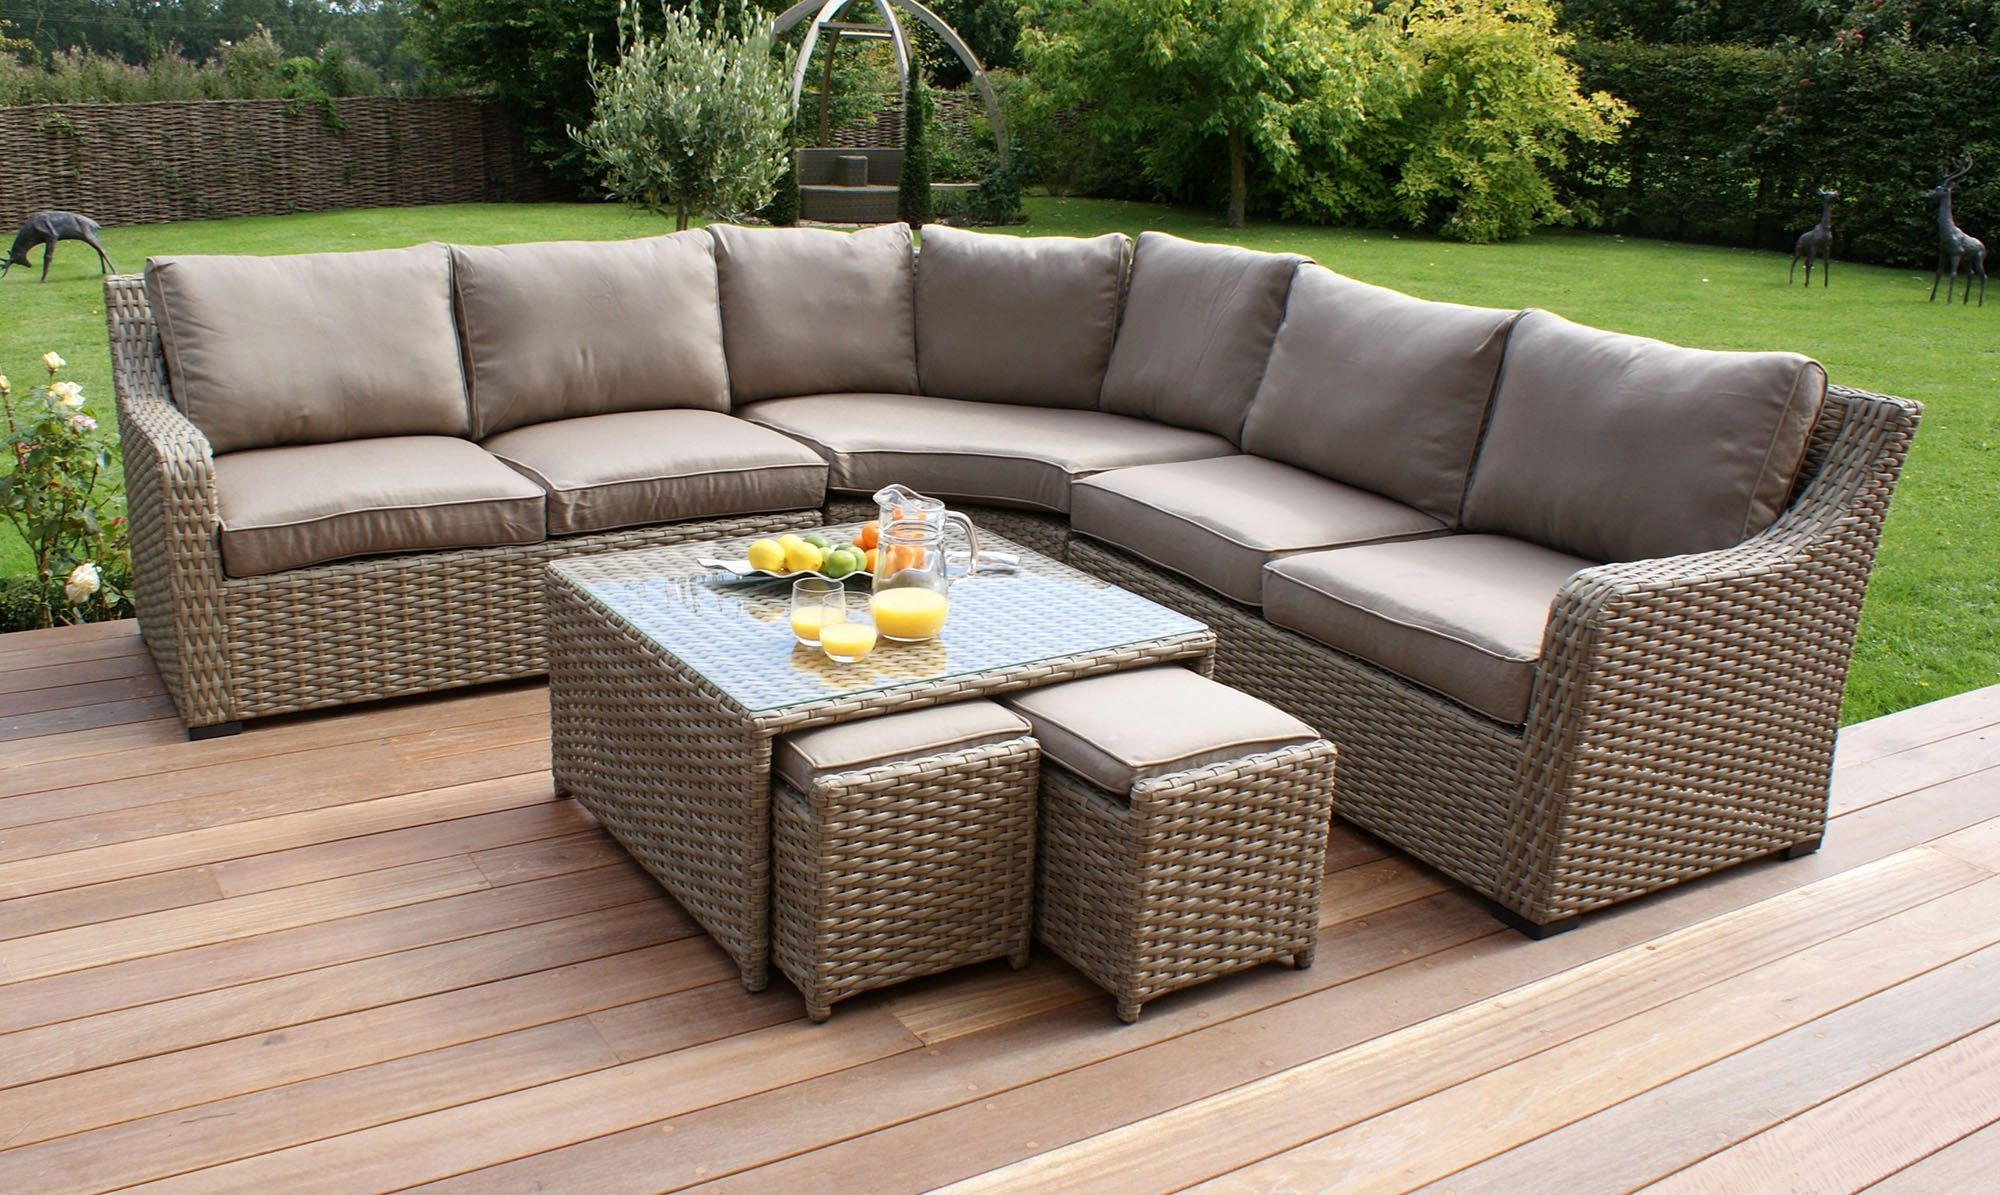 Good Corner Sofa Outdoor Furniture Image Rattan Outdoor Corner Sofa Sets Centerfieldbar Outdoor Sofa Sets Garden Furniture Sets Garden Sofa Set